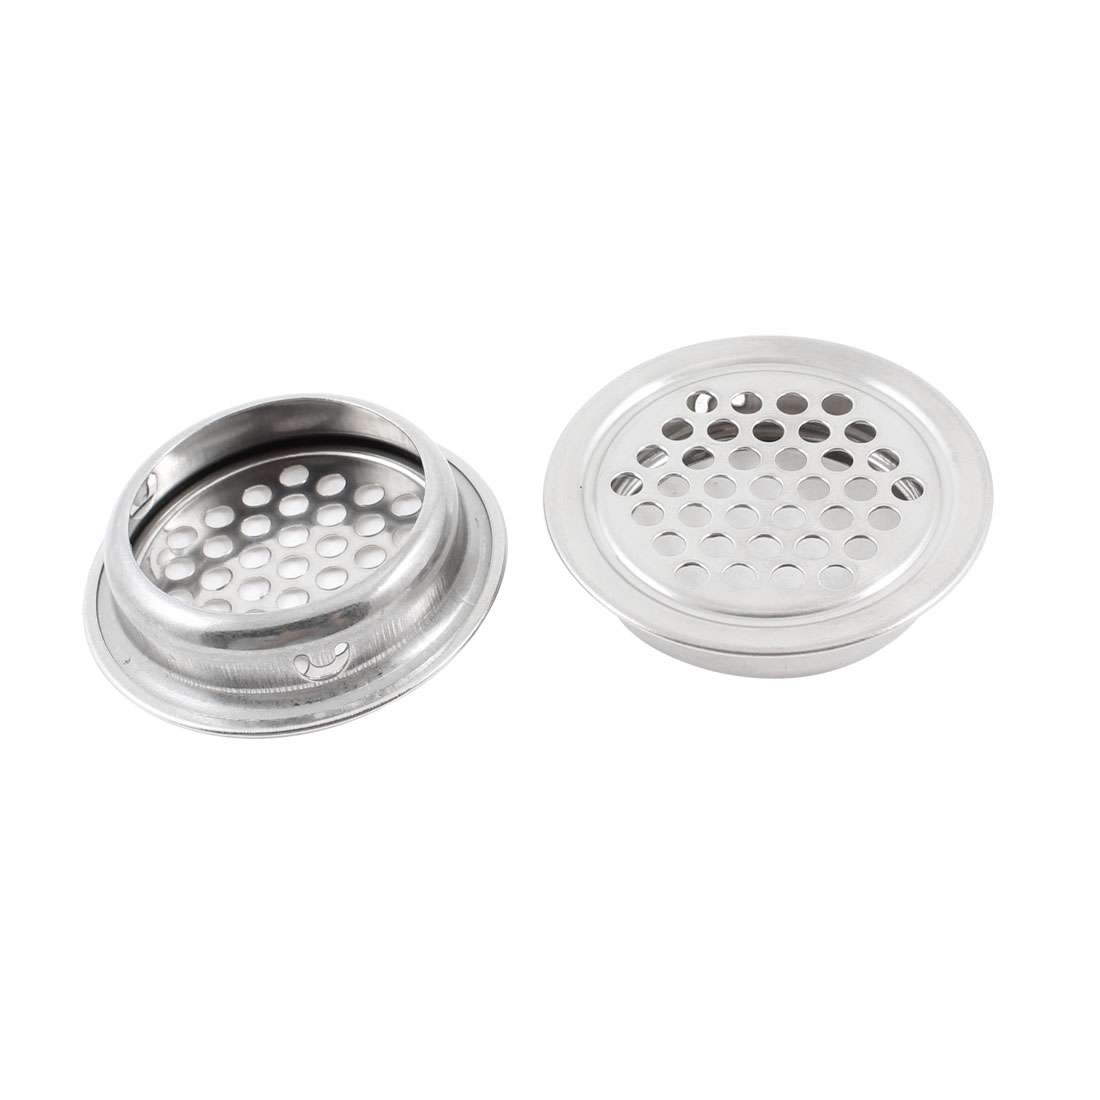 34mm x 42mm Silver Tone Perforated Round Mesh Air Vents Mini Louvers 2 Pcs